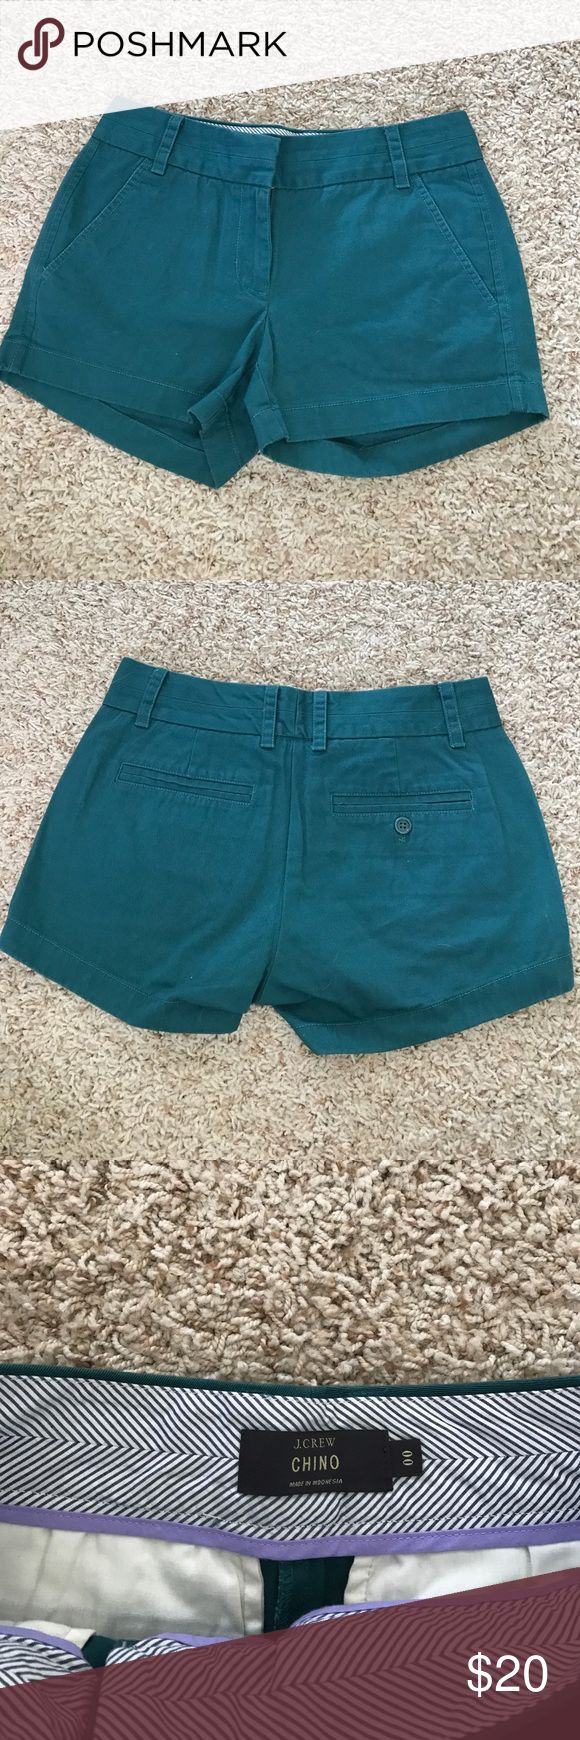 Teal J. Crew size 00 chino shorts Teal J. Crew size 00 chino shorts J. Crew Shorts